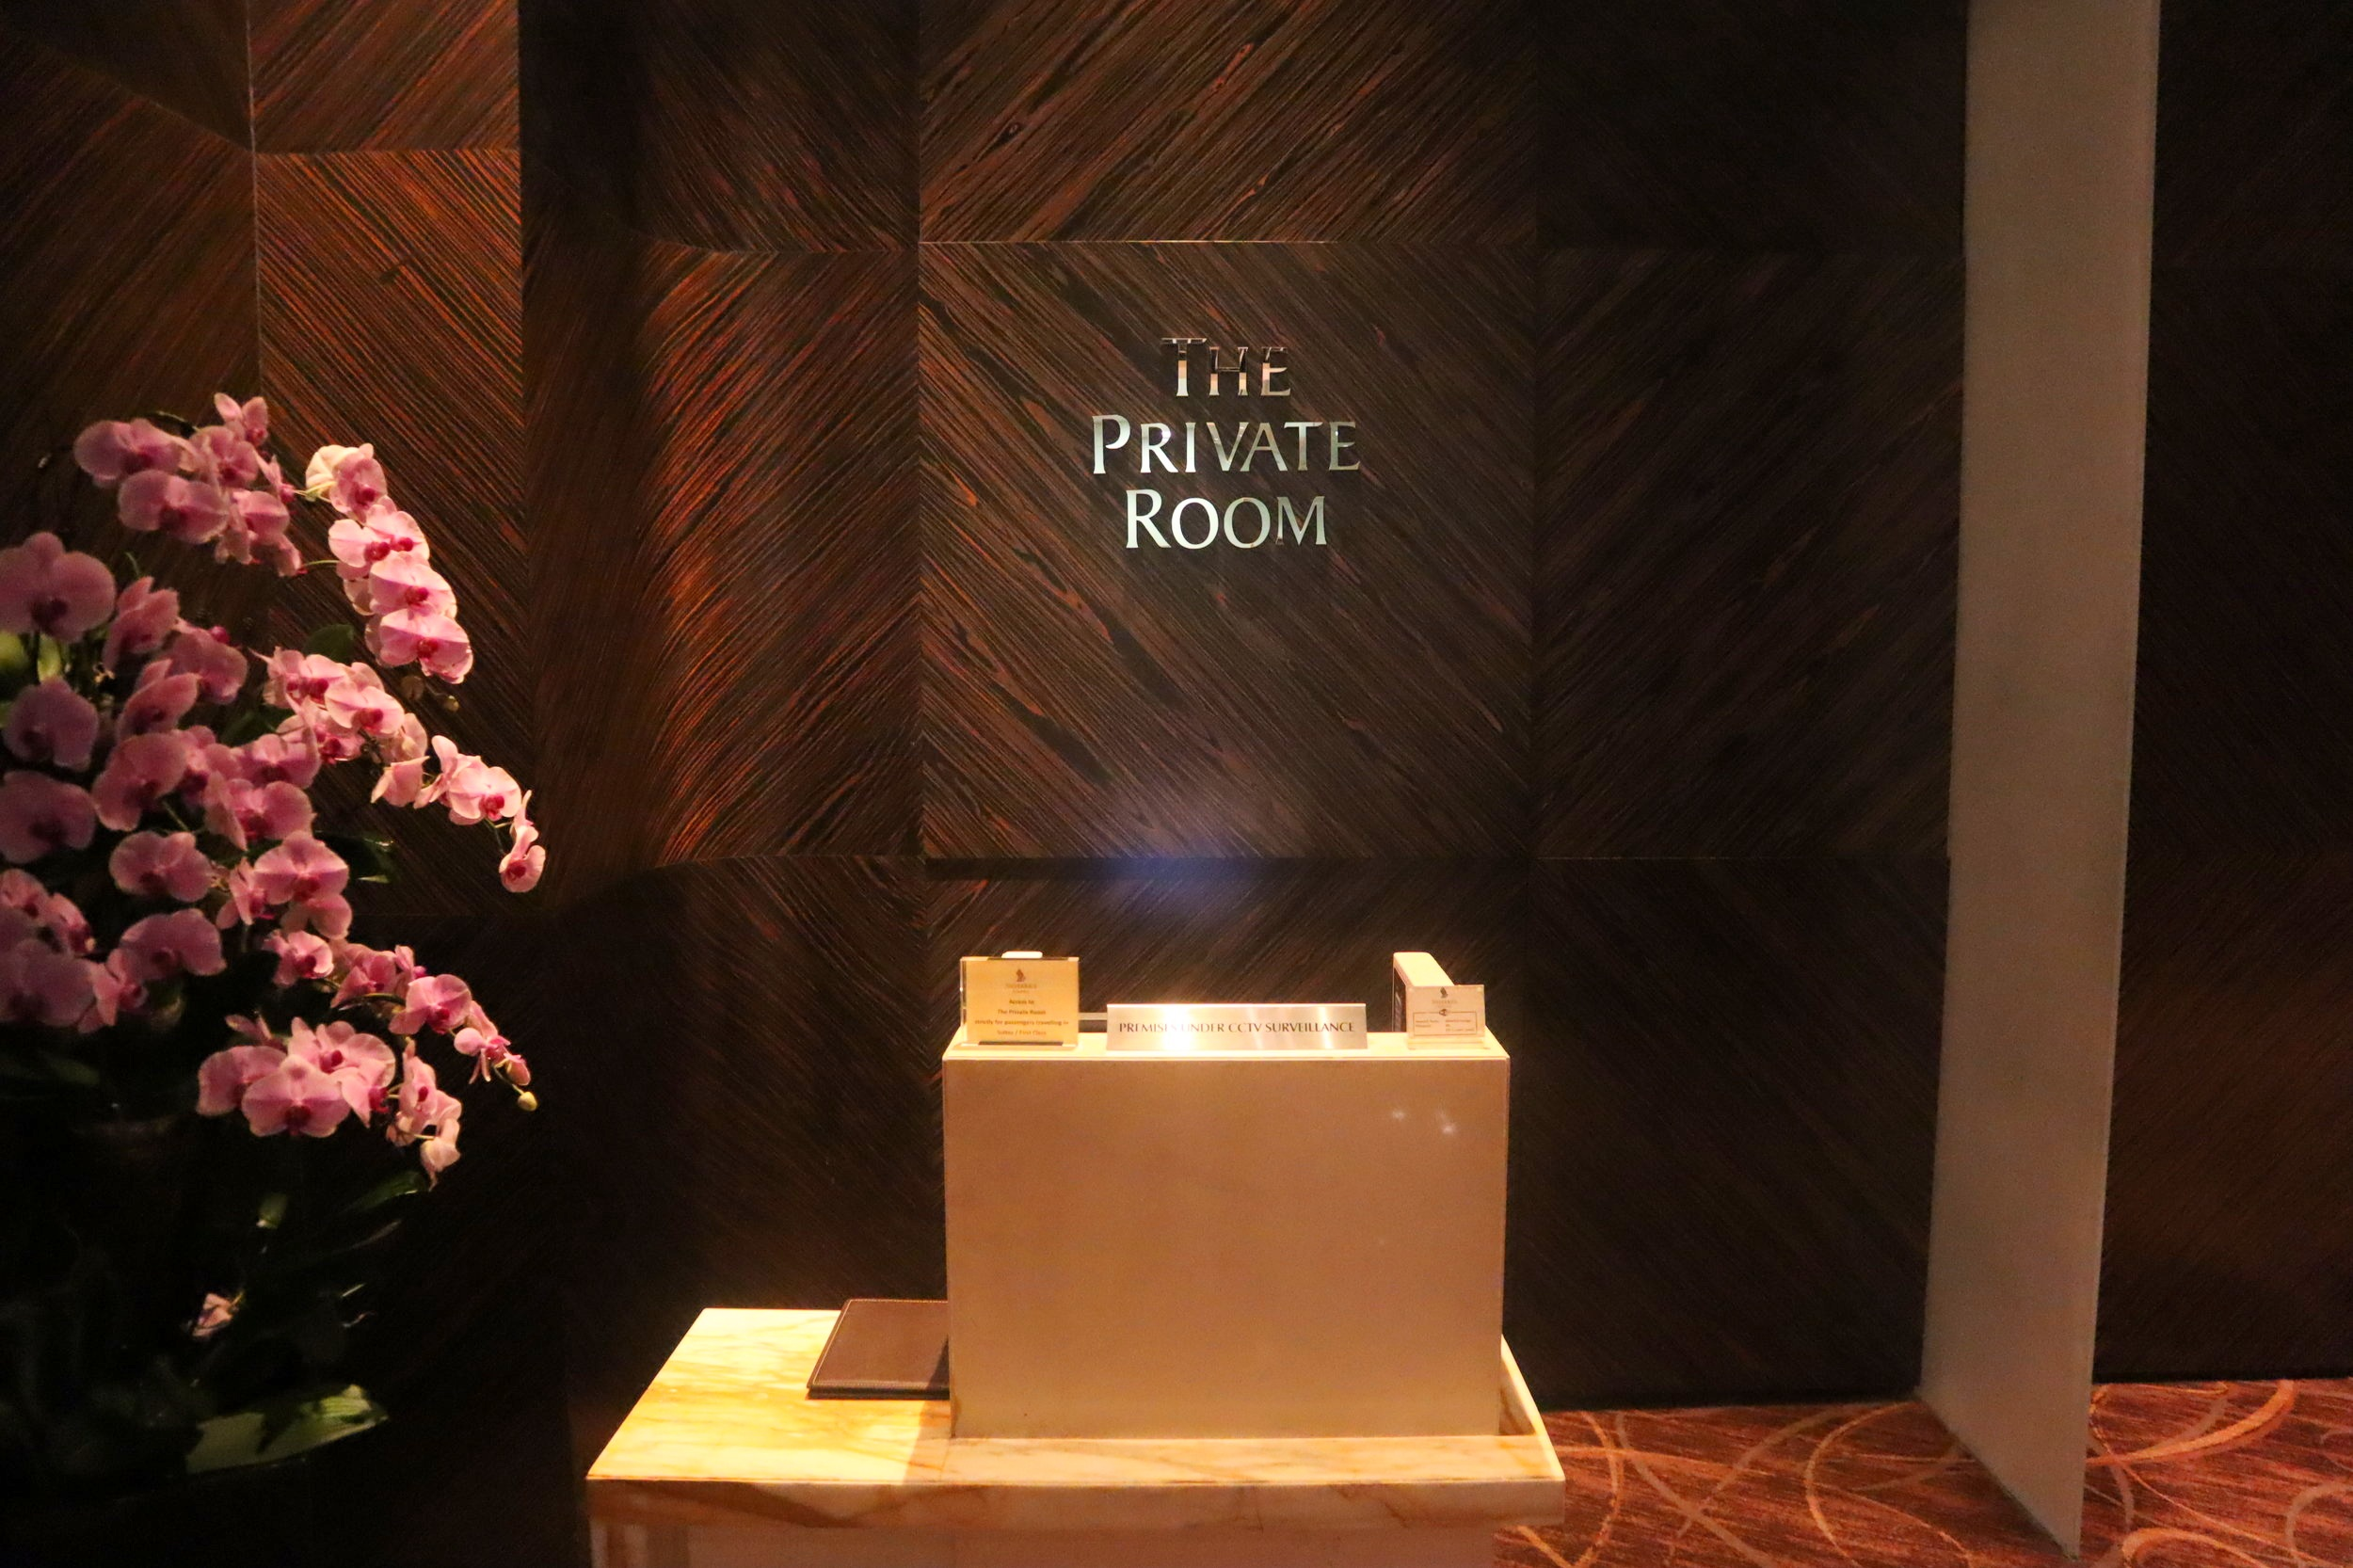 The Private Room by Singapore Airlines – Entrance